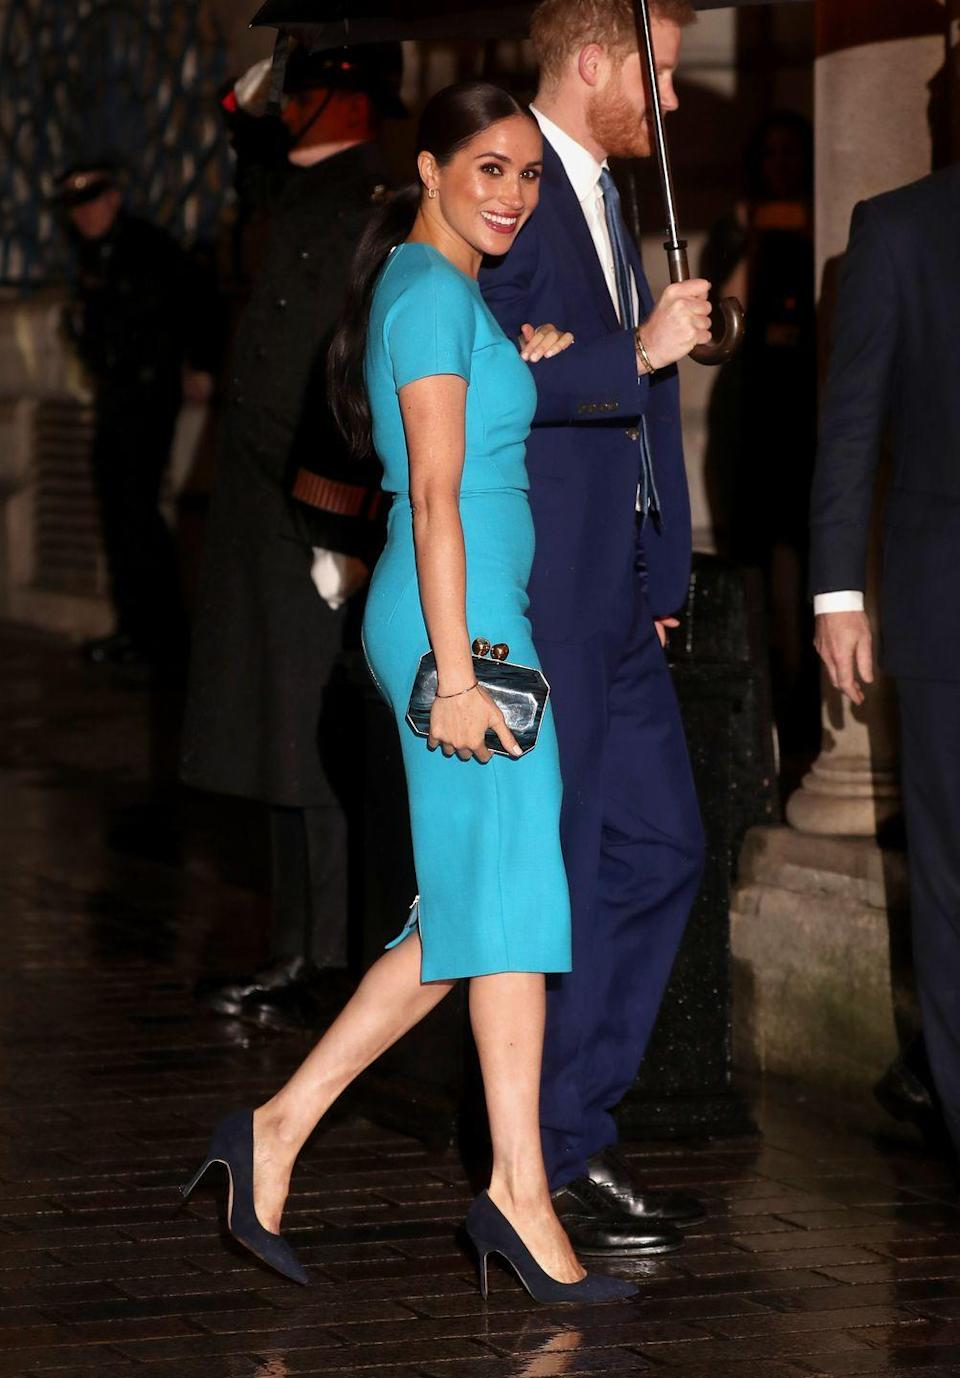 "<p>For one of her final appearances as a working royal, Meghan wore a turquoise <a href=""https://www.townandcountrymag.com/society/tradition/a31247693/meghan-markle-blue-dress-smile-endeavour-fund-awards-photos/"" rel=""nofollow noopener"" target=""_blank"" data-ylk=""slk:Victoria Beckham dress"" class=""link rapid-noclick-resp"">Victoria Beckham dress</a>, black pumps, and a Stella McCartney clutch. The royal couple attended the <a href=""https://www.townandcountrymag.com/society/tradition/g31137927/meghan-markle-prince-harry-endeavour-fund-2020-photos/"" rel=""nofollow noopener"" target=""_blank"" data-ylk=""slk:Endeavour Fund Awards"" class=""link rapid-noclick-resp"">Endeavour Fund Awards</a>, an annual ceremony that honors wounded servicemen and women who have used sport or adventurous challenges to aid in their recovery. </p>"